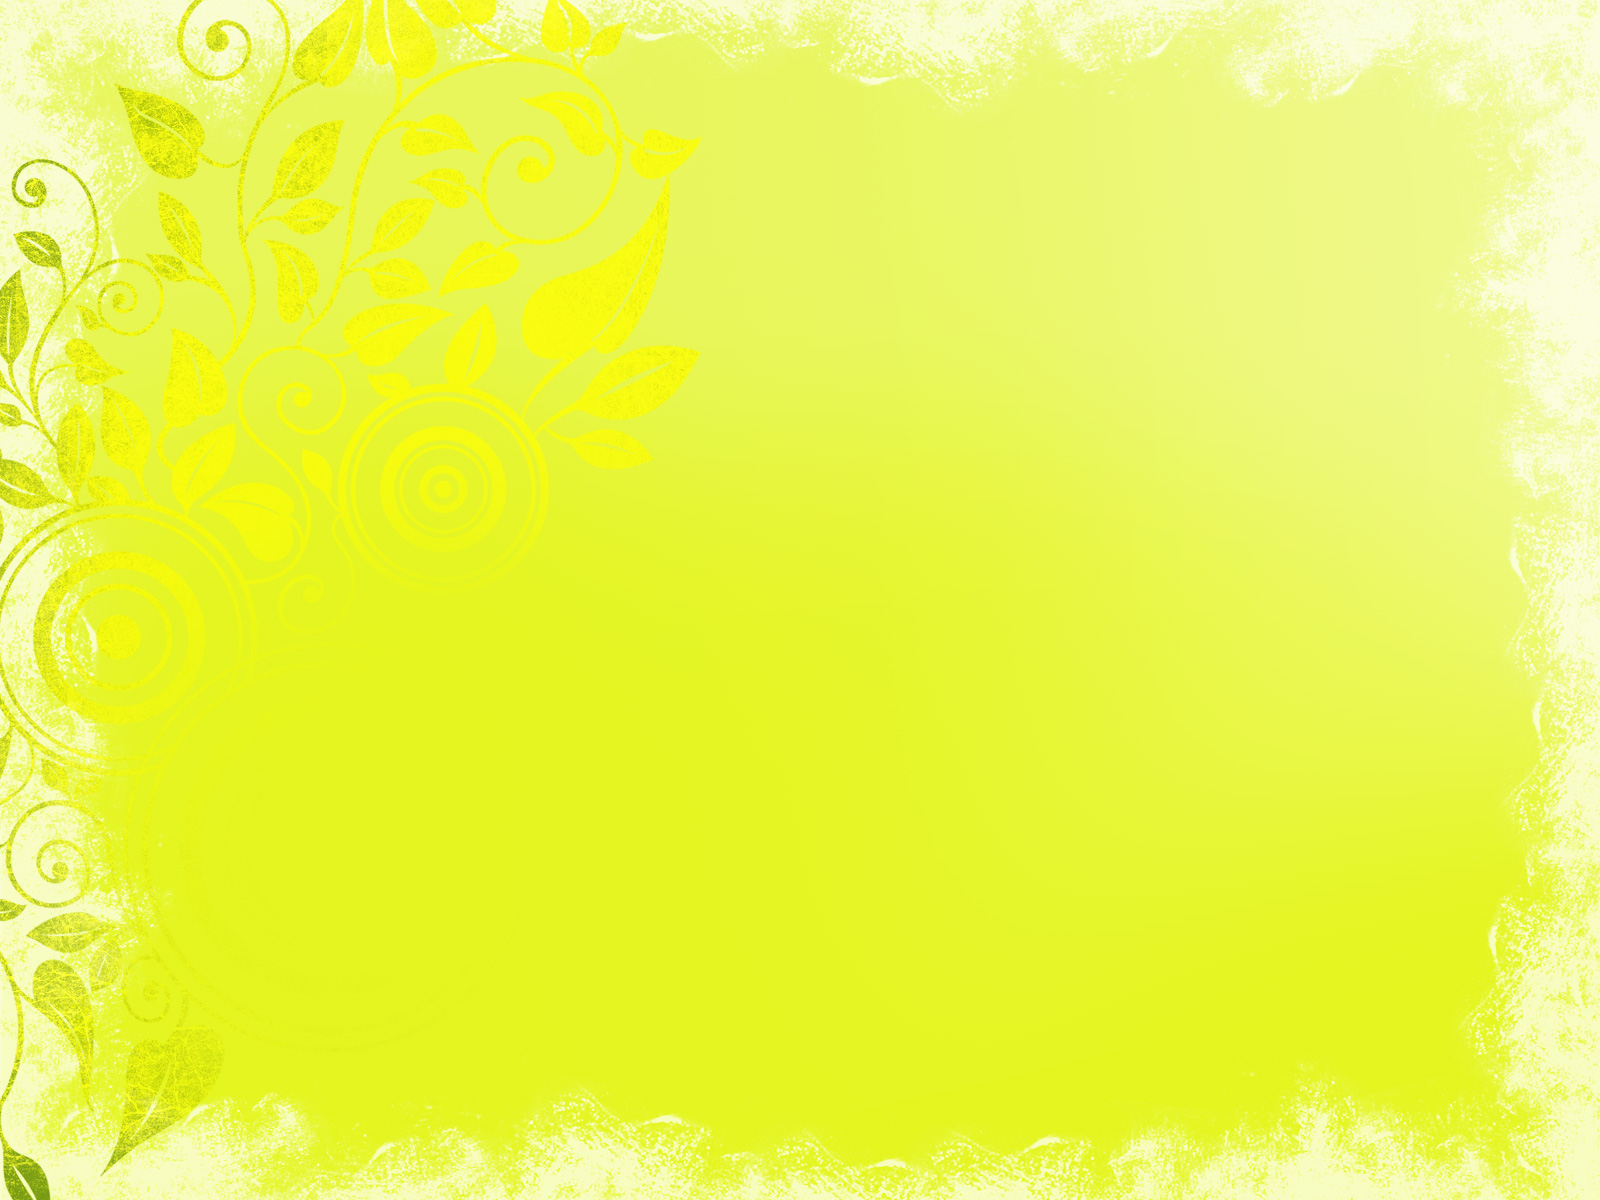 Ppt free yellow powerpoint templates toneelgroepblik Choice Image